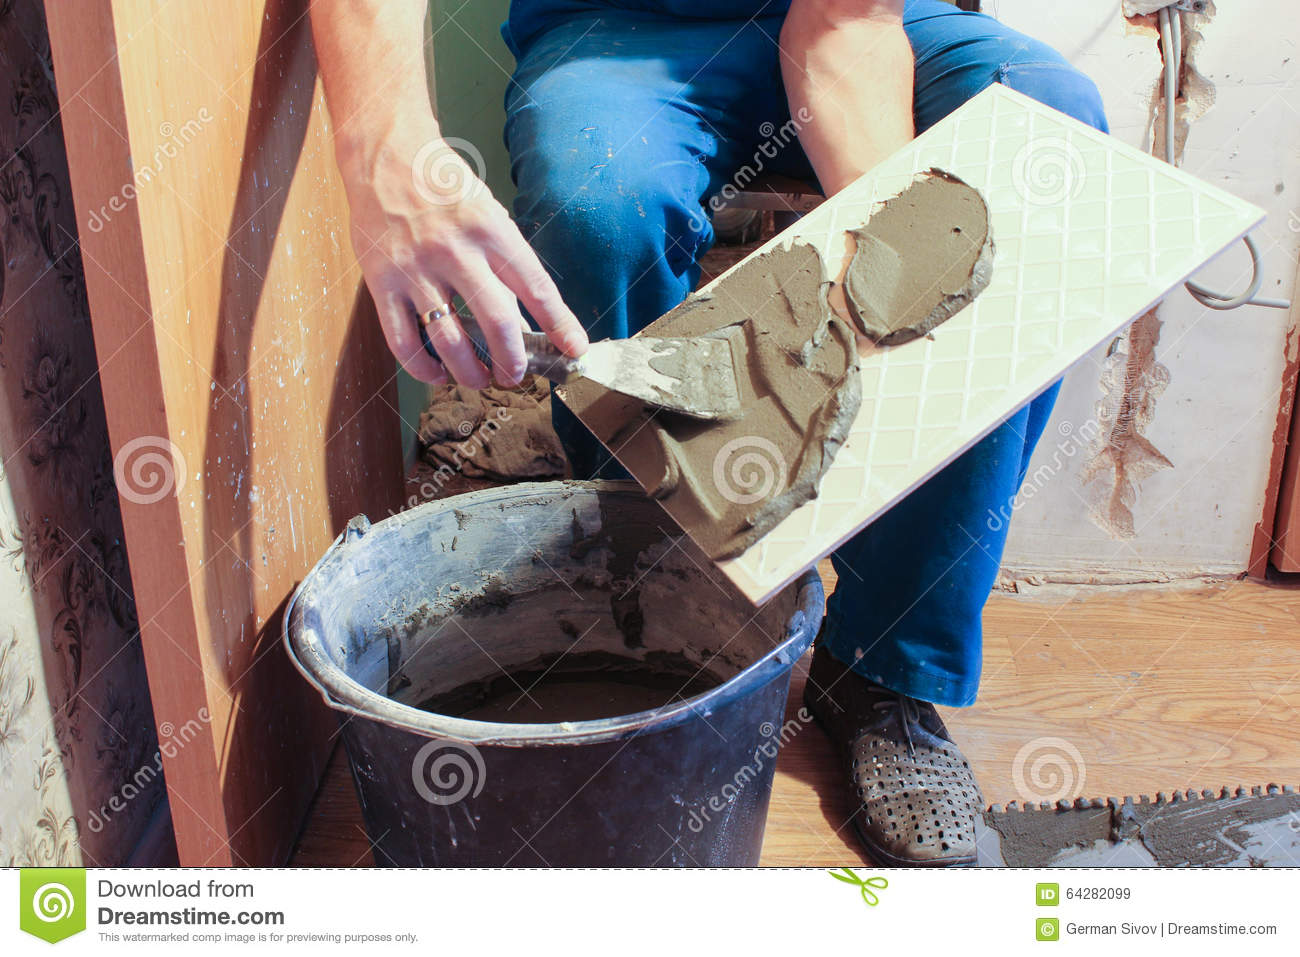 Smearing Glue On The Tile Trowel  Stock Image - Image of